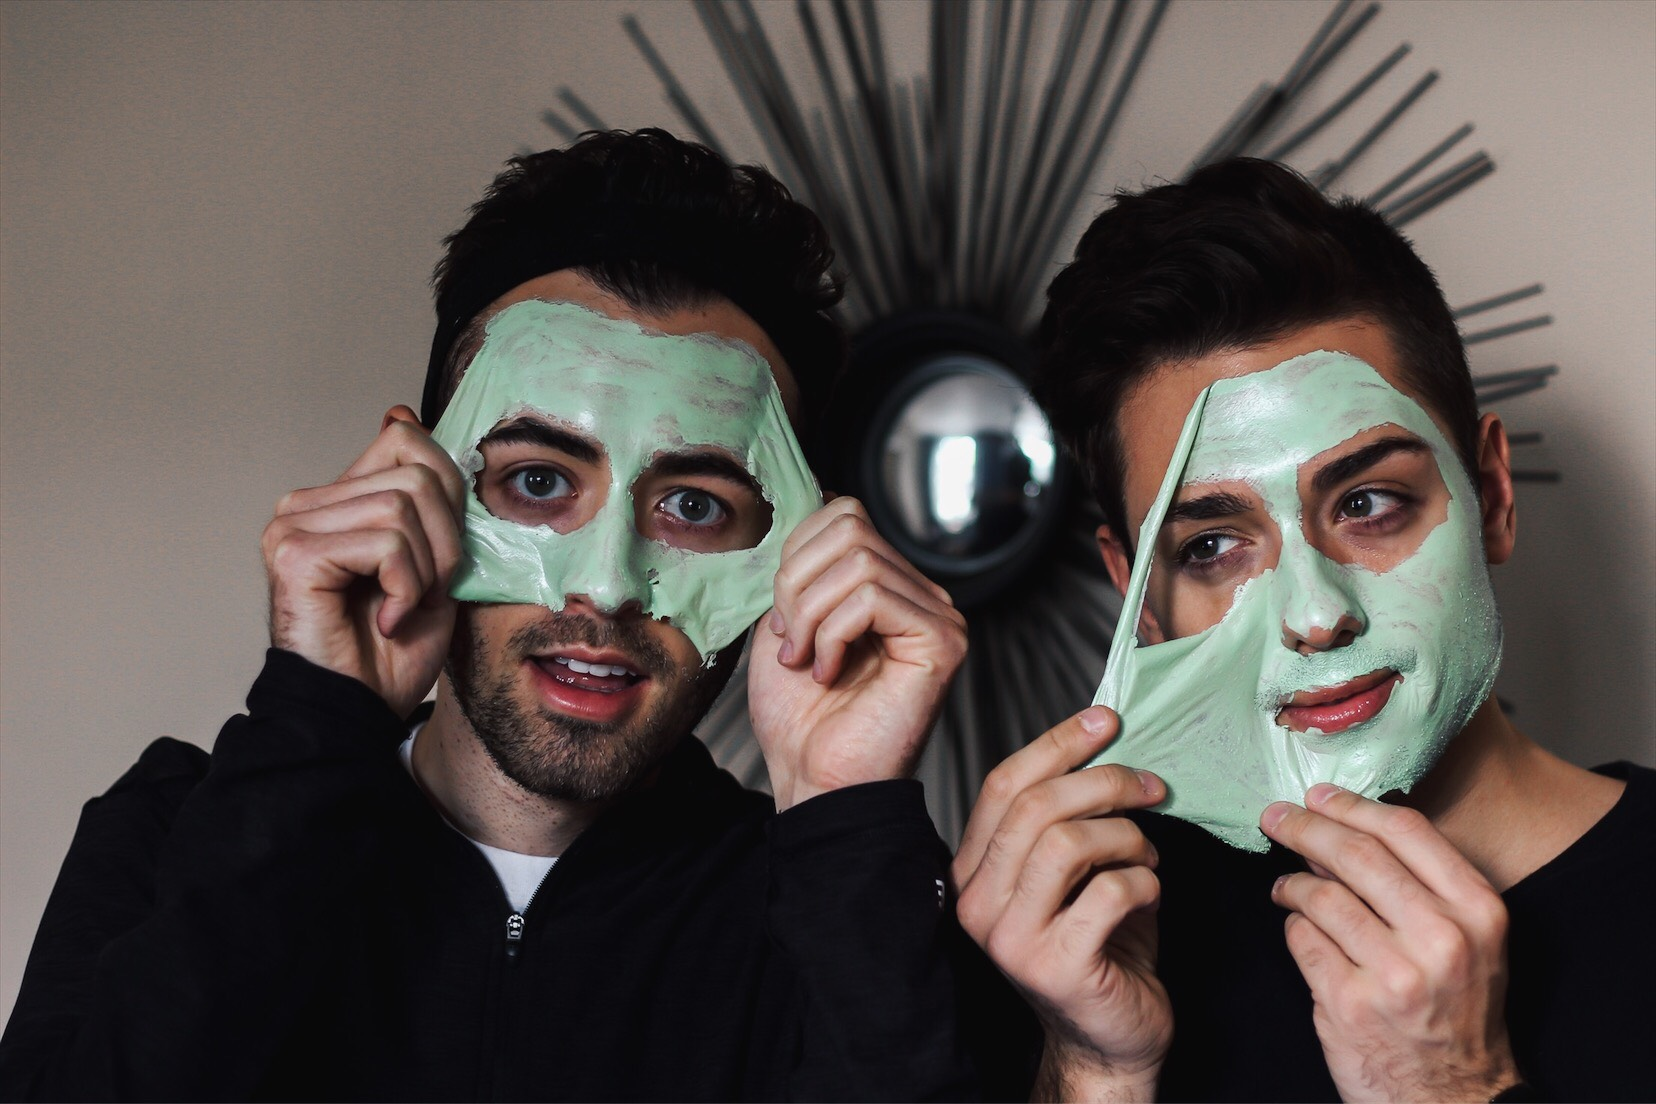 alex and mike boscia peel off mask